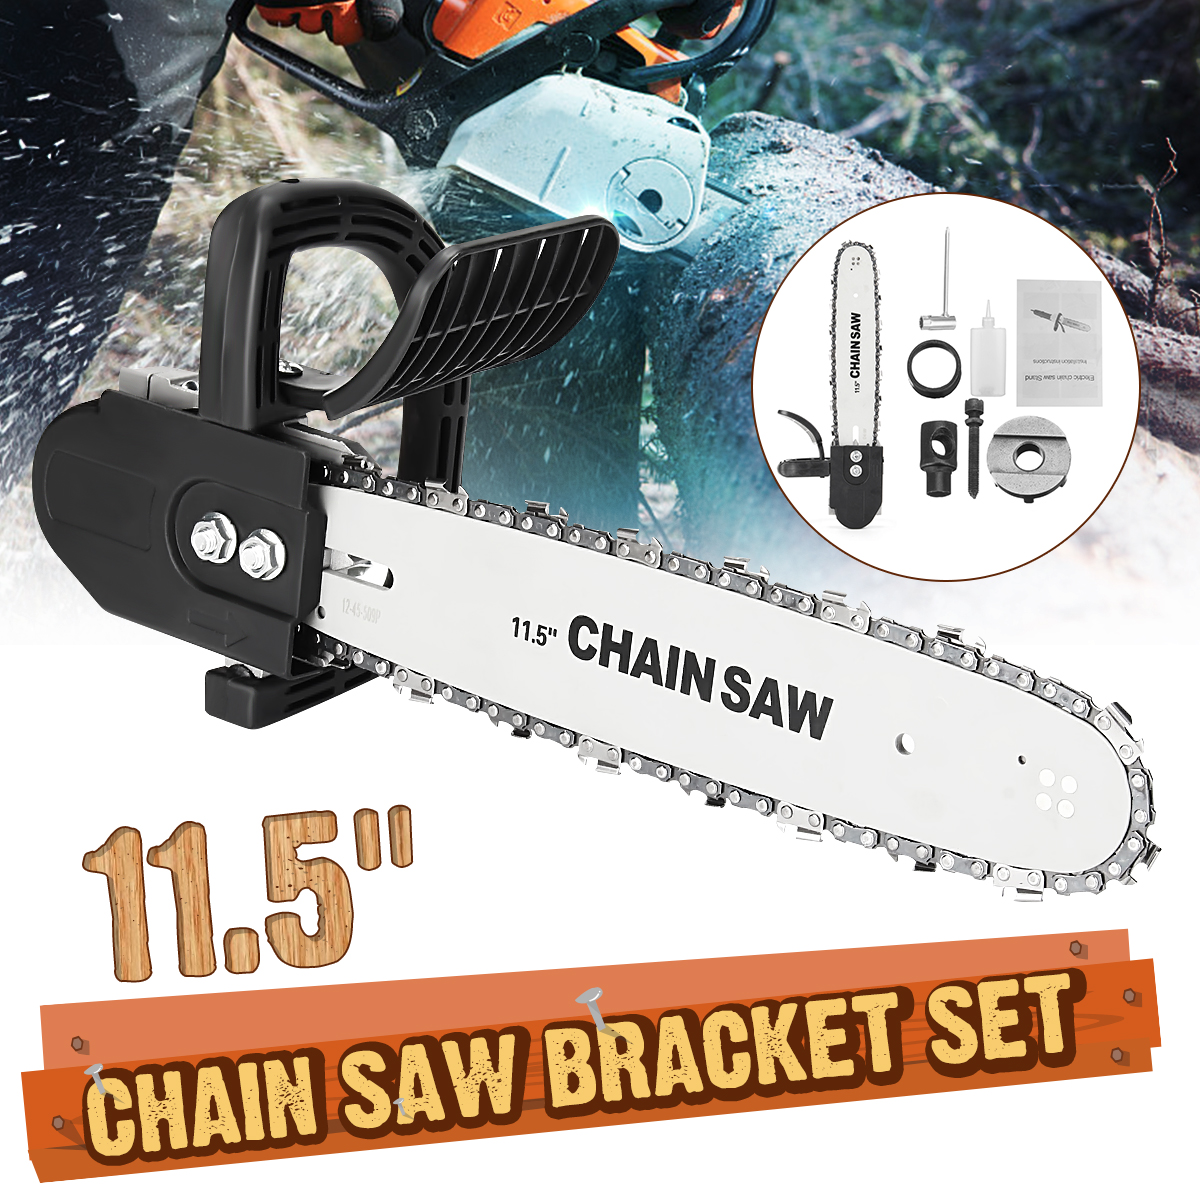 Electric Saws 11.5 Inch Chainsaw Bracket Set High Carbon Steel For Electric Angle Grinder To Chain Saw Woodworking Power Tools chainsaw parts chain saw carry storage bag for saws with 12 to 20 guide bar length